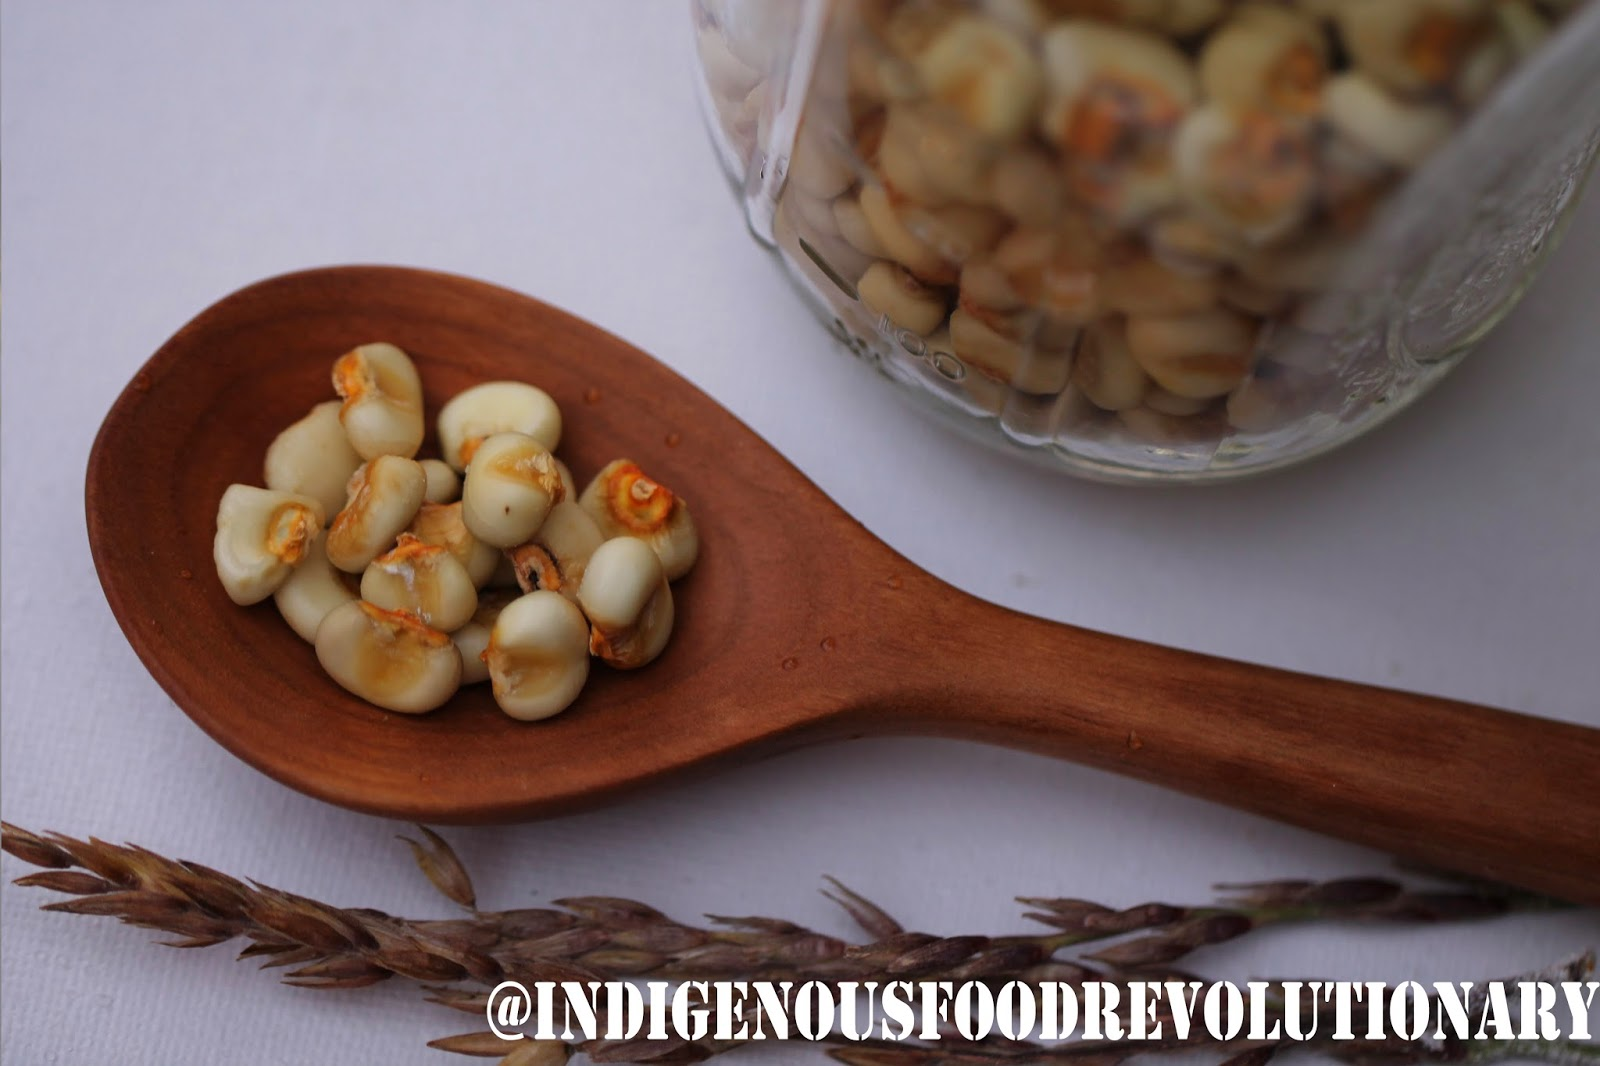 Indigenous food revolutionary iroquois white corn project food shoot forumfinder Image collections